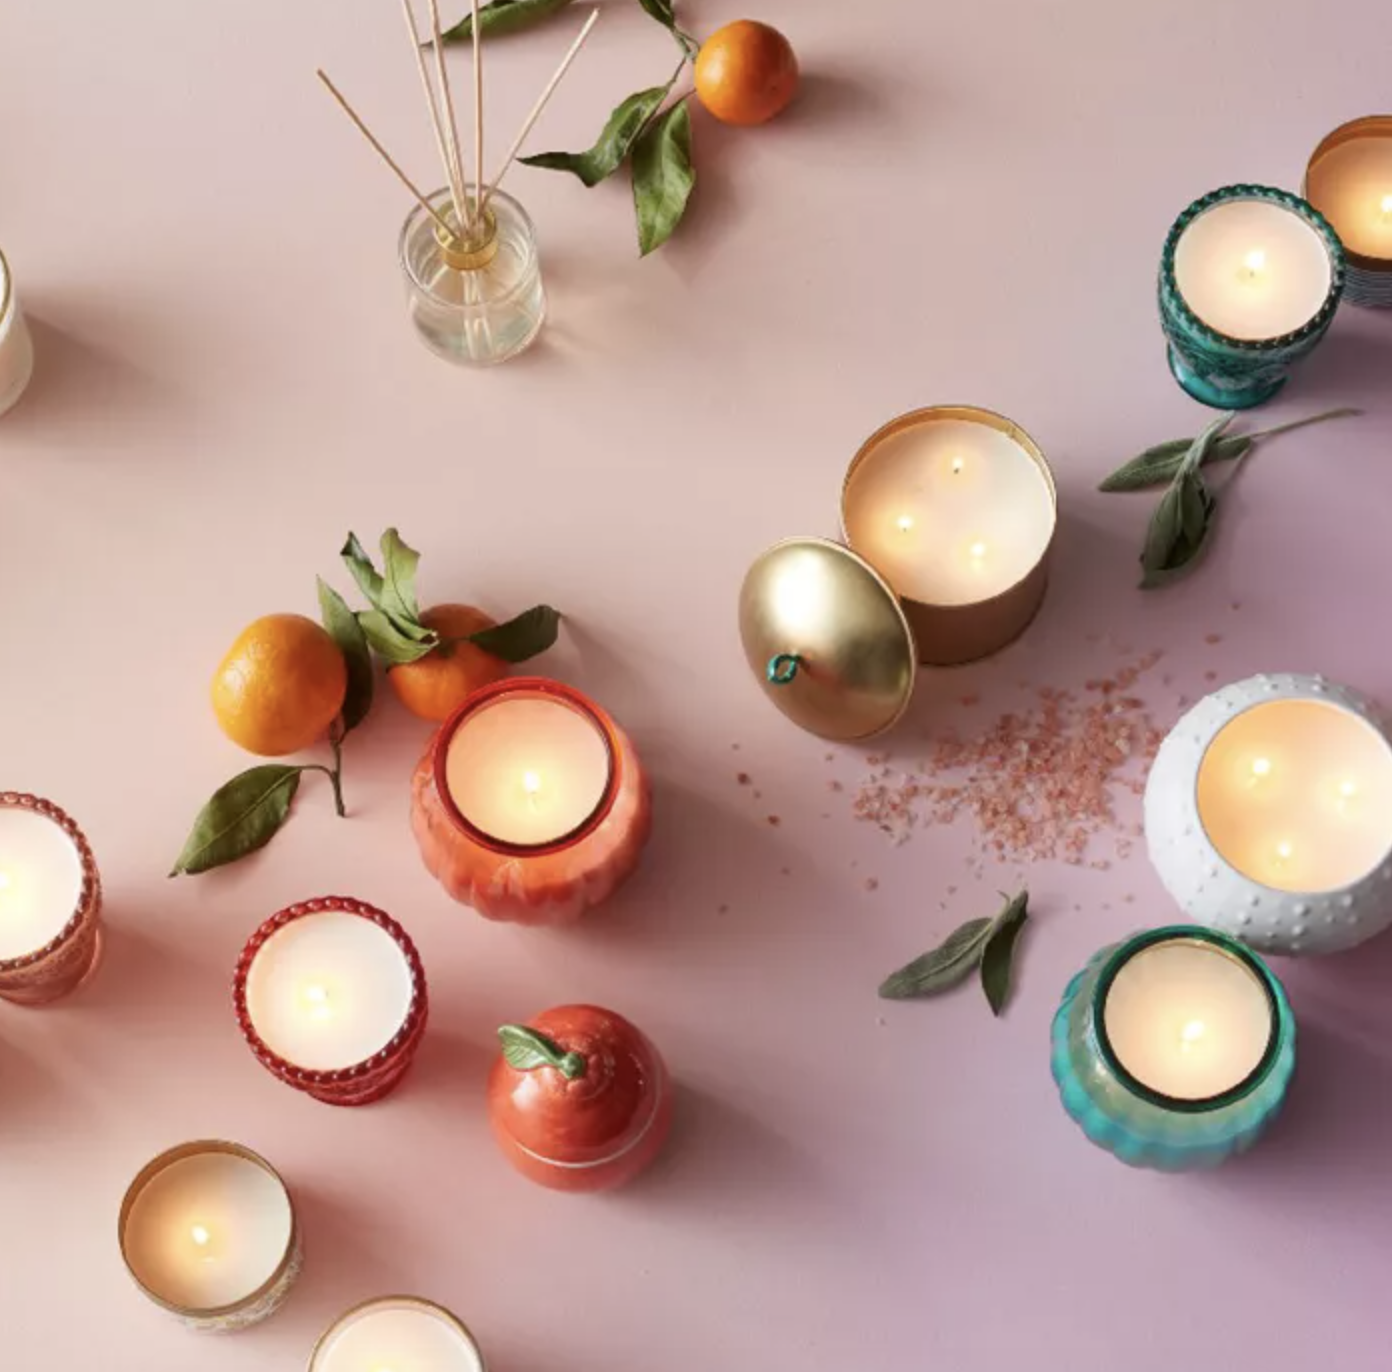 A bird's eye shot of a collection of candles from Target in a variety of colors and styles